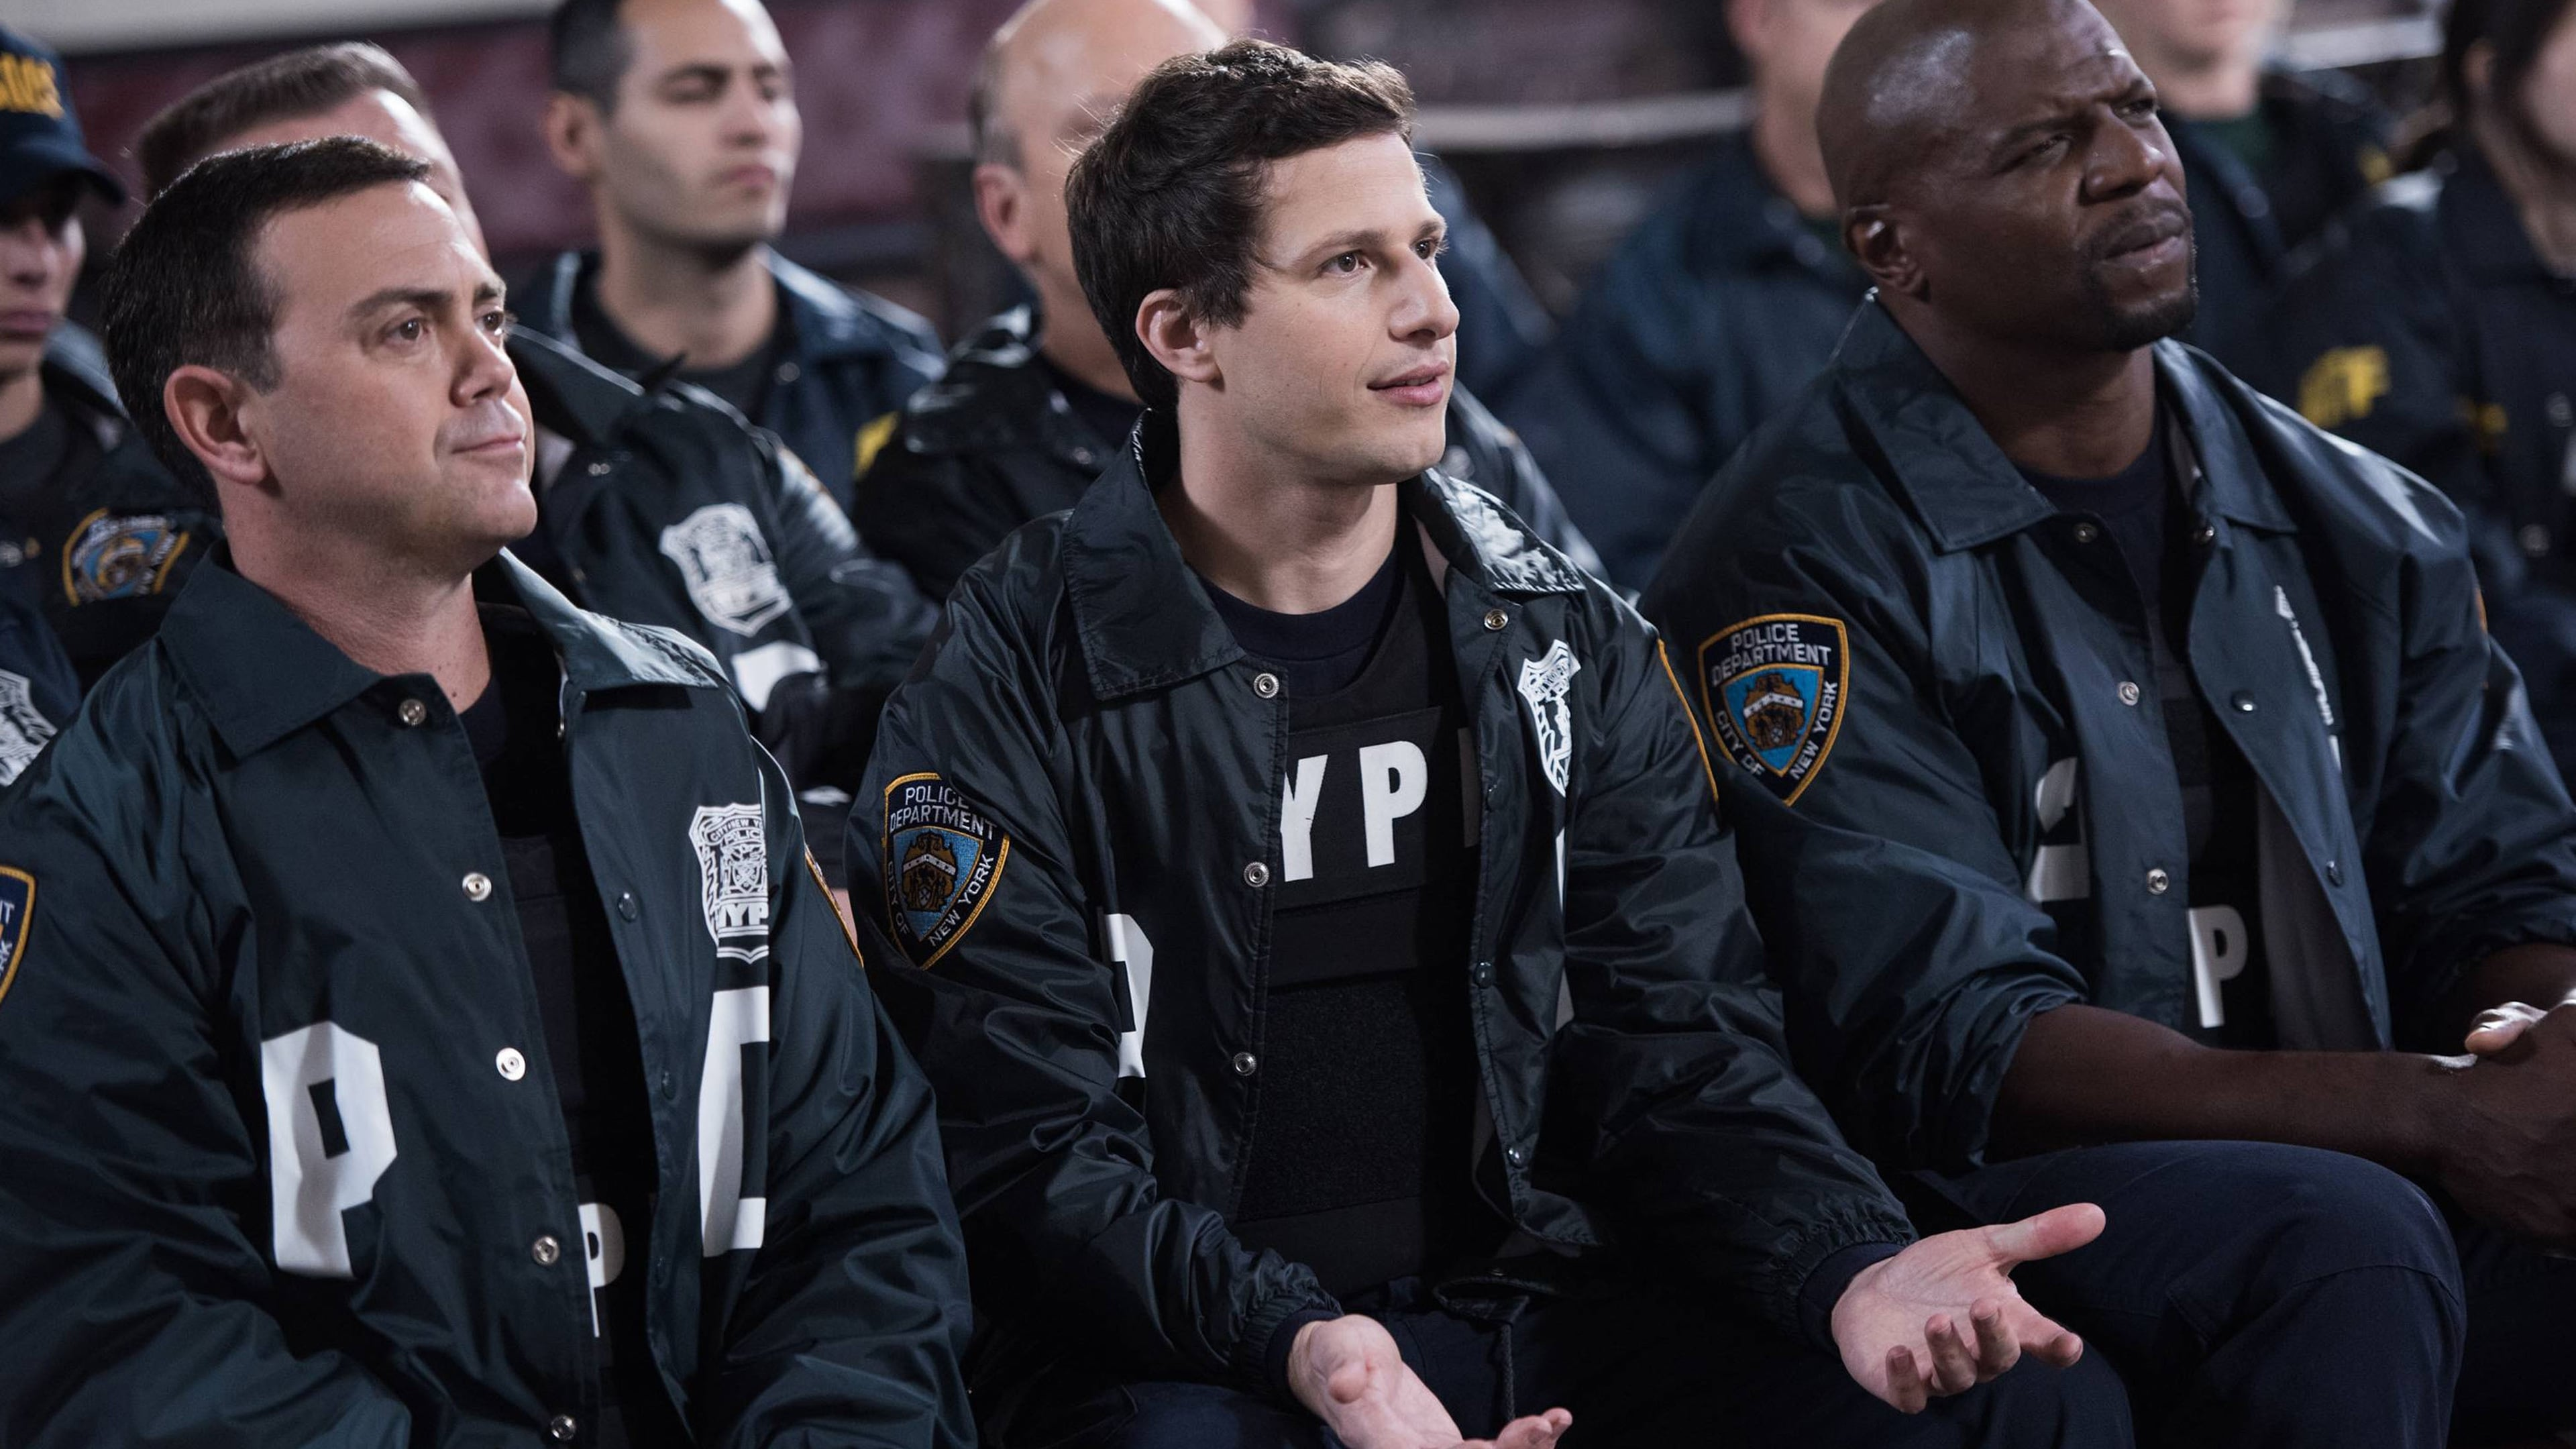 Brooklyn Nine-Nine Season 2 :Episode 15  Windbreaker City